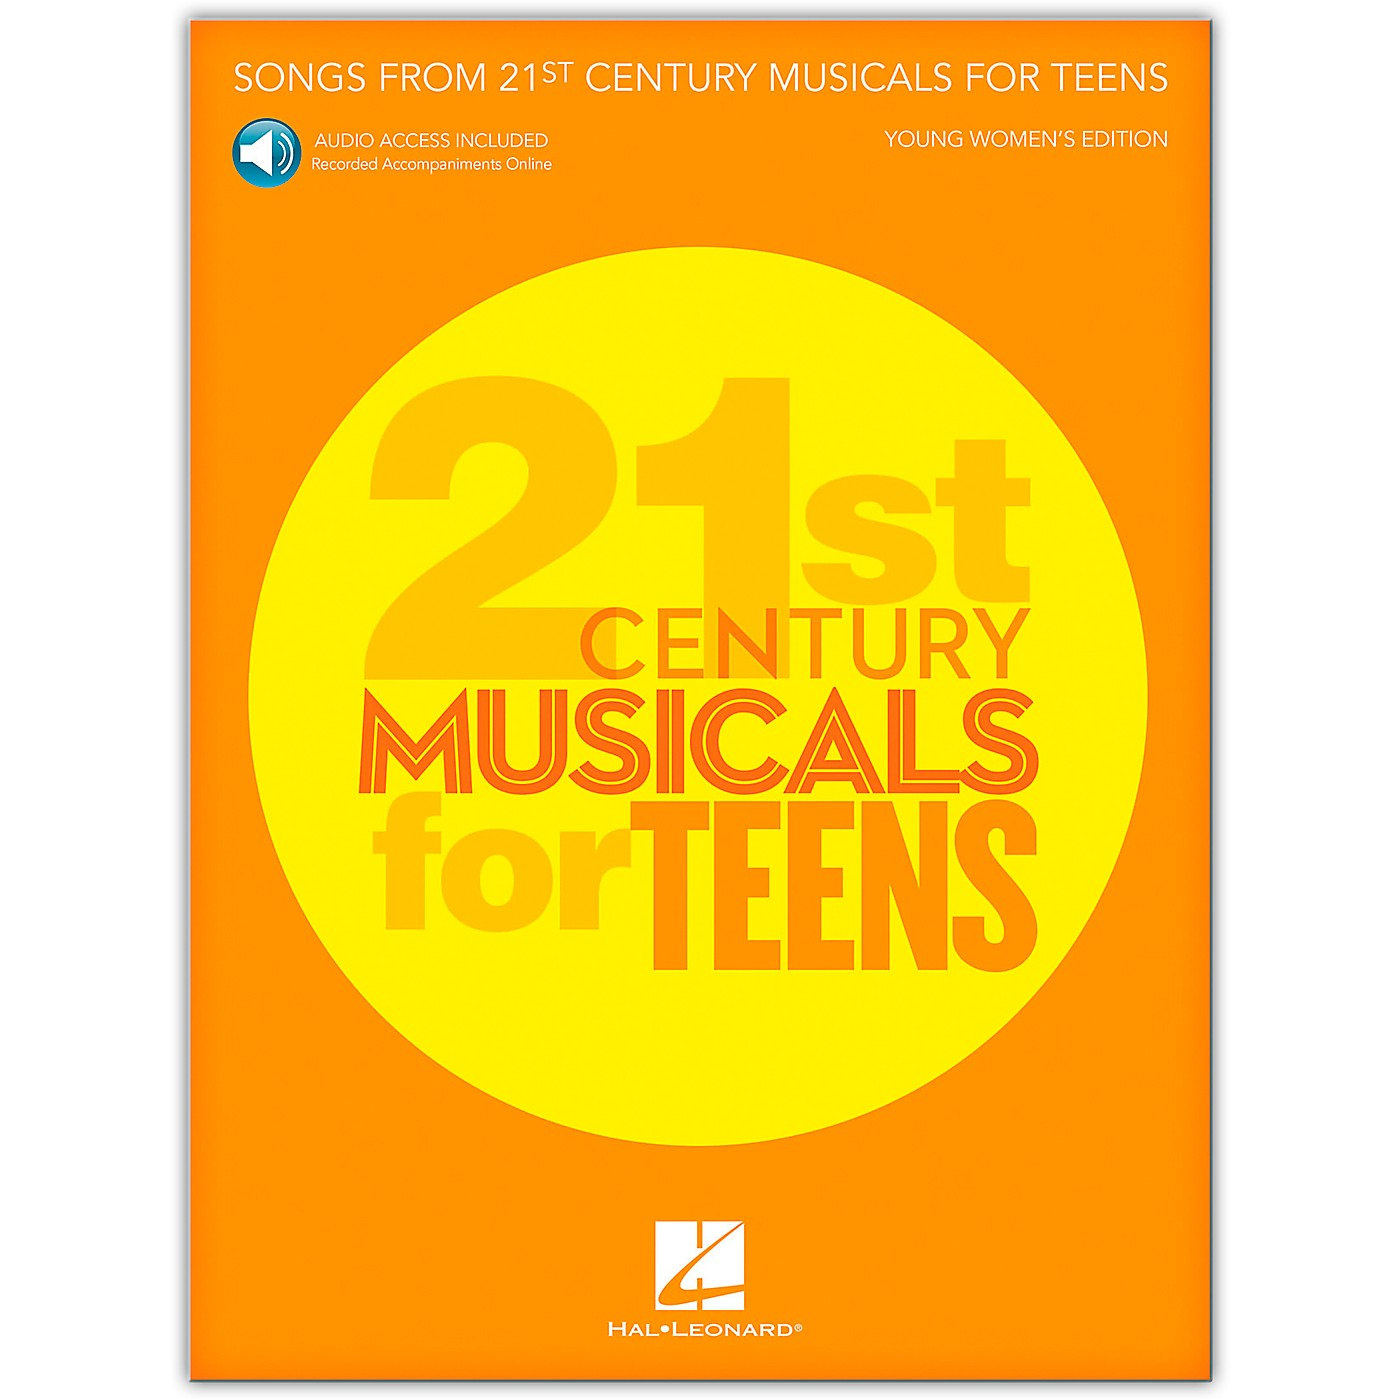 Hal Leonard Songs from 21st Century Musicals for Teens: Young Women's Edition  Book with Recorded Accompaniments (Audio Online) thumbnail